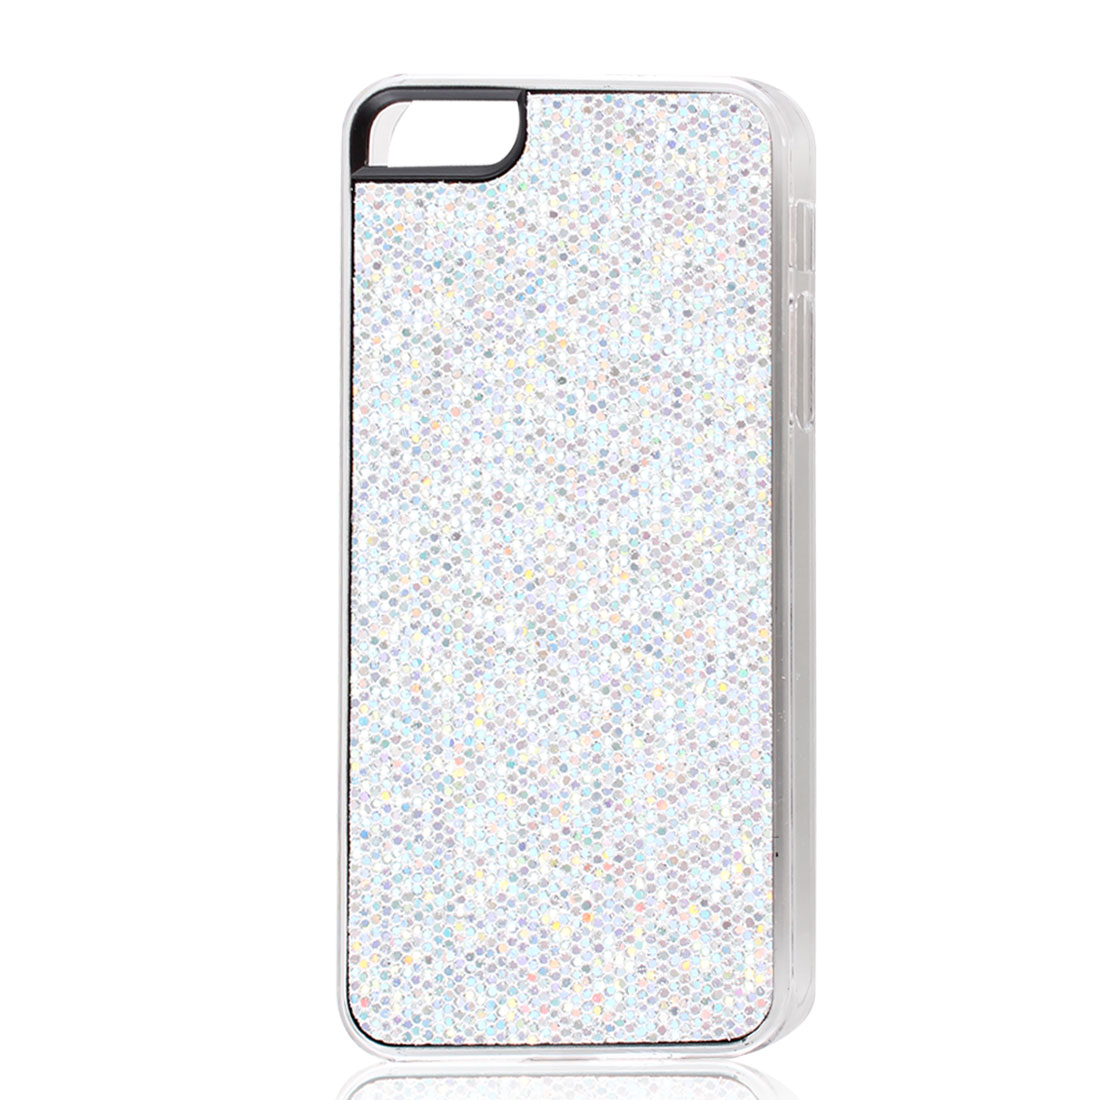 Silver Tone Sparkle Glitter Hexagons Hard Back Case Cover for iPhone 5 5G